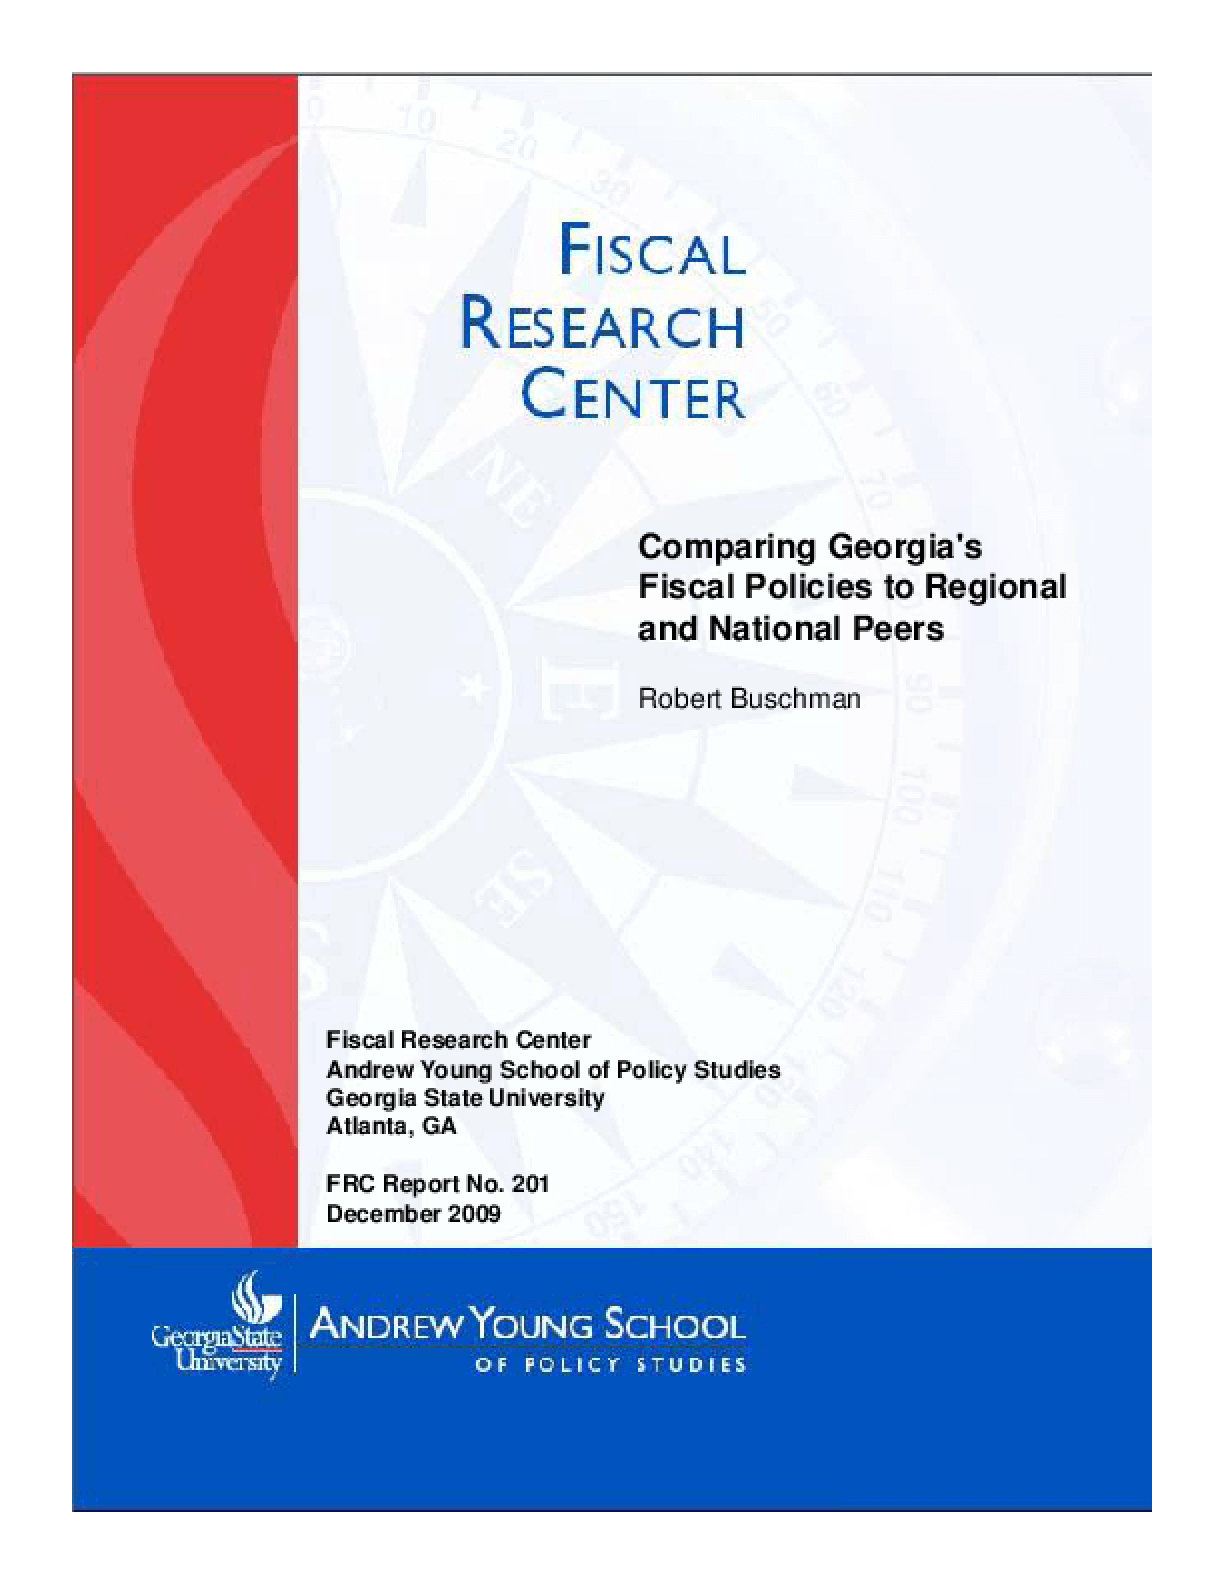 Comparing Georgia's Fiscal Policies to Regional and National Peers